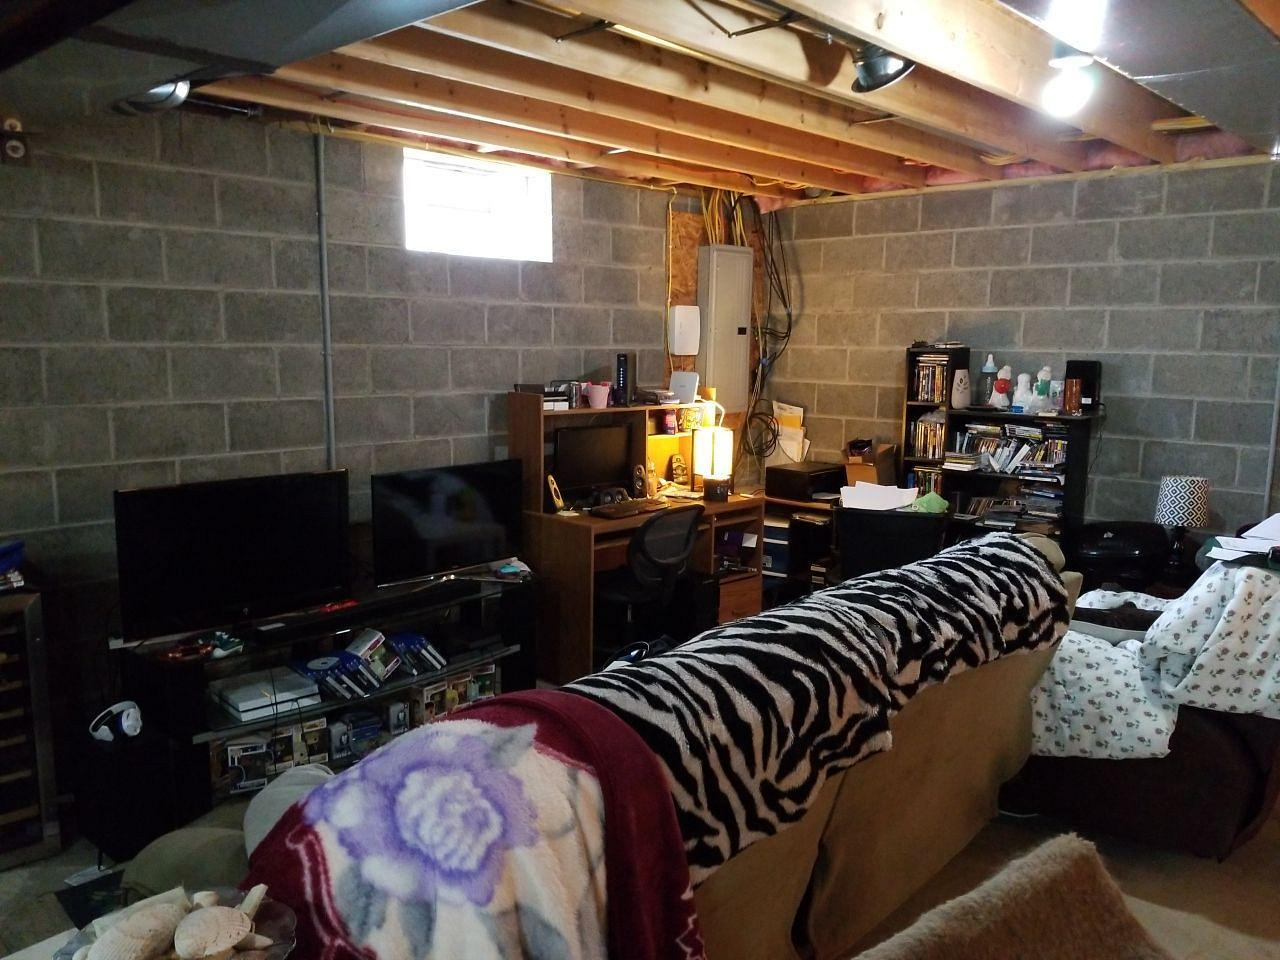 Awesome Game Room Transformation in Washington, PA! - Before Photo